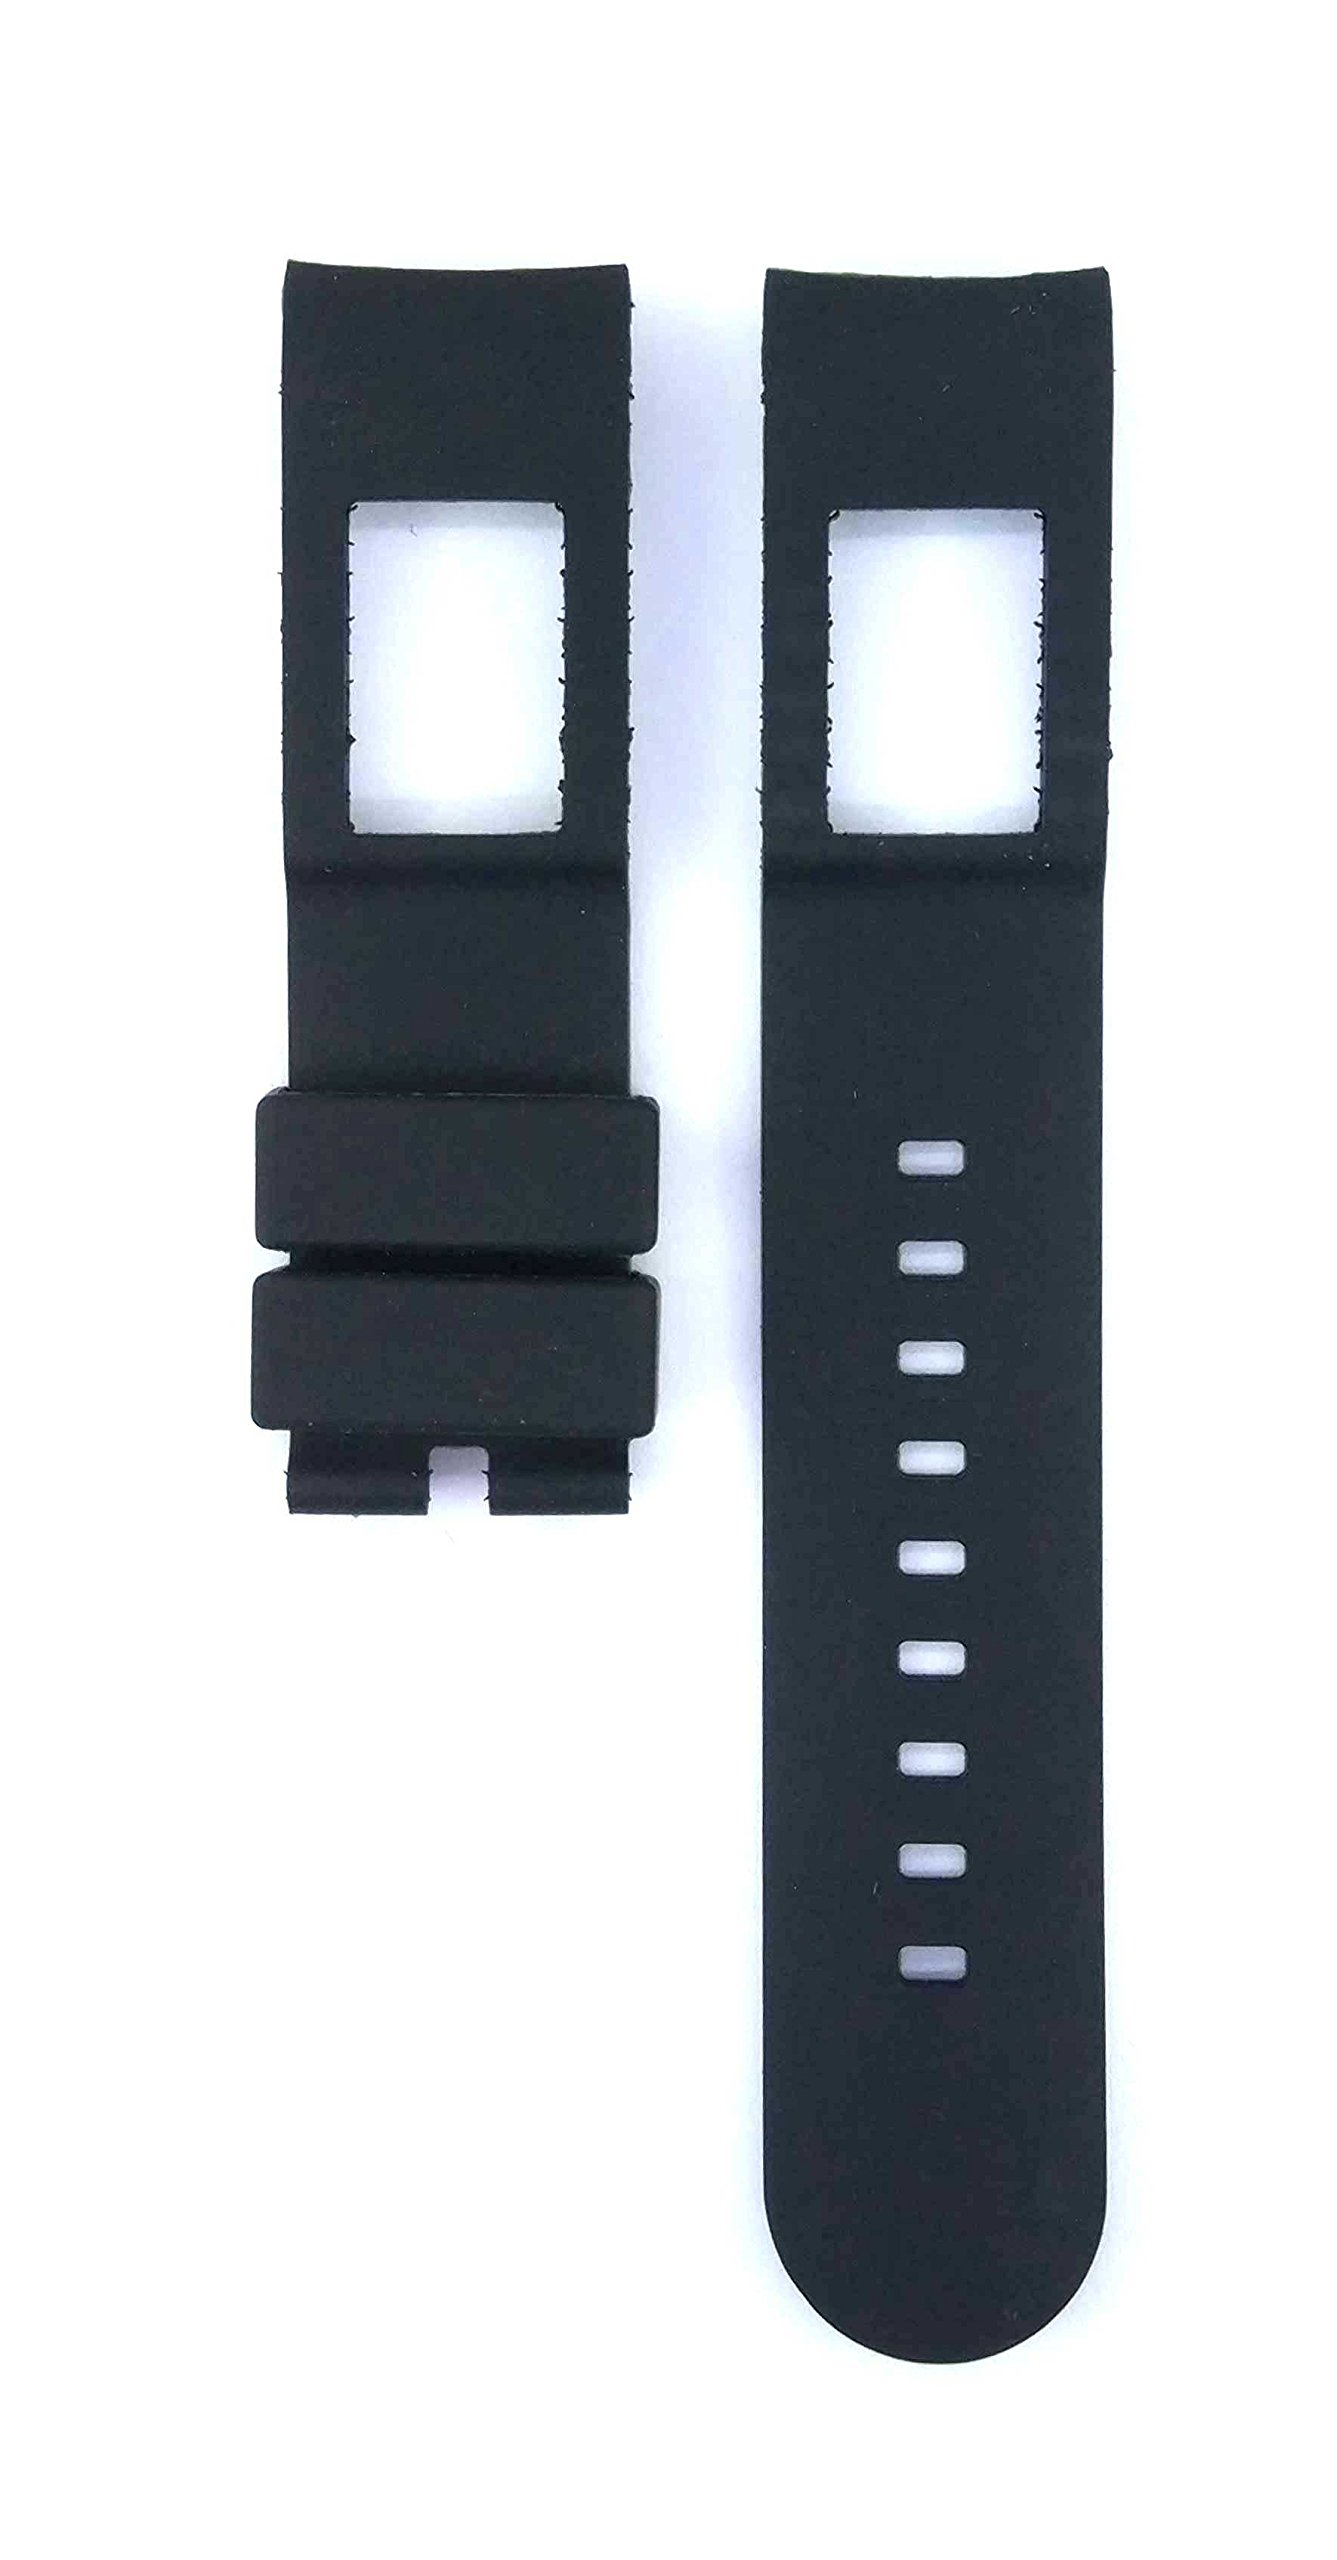 22mm Black Rubber Watch Band Strap For Working Chronograph AP0690 Watches 478ARM